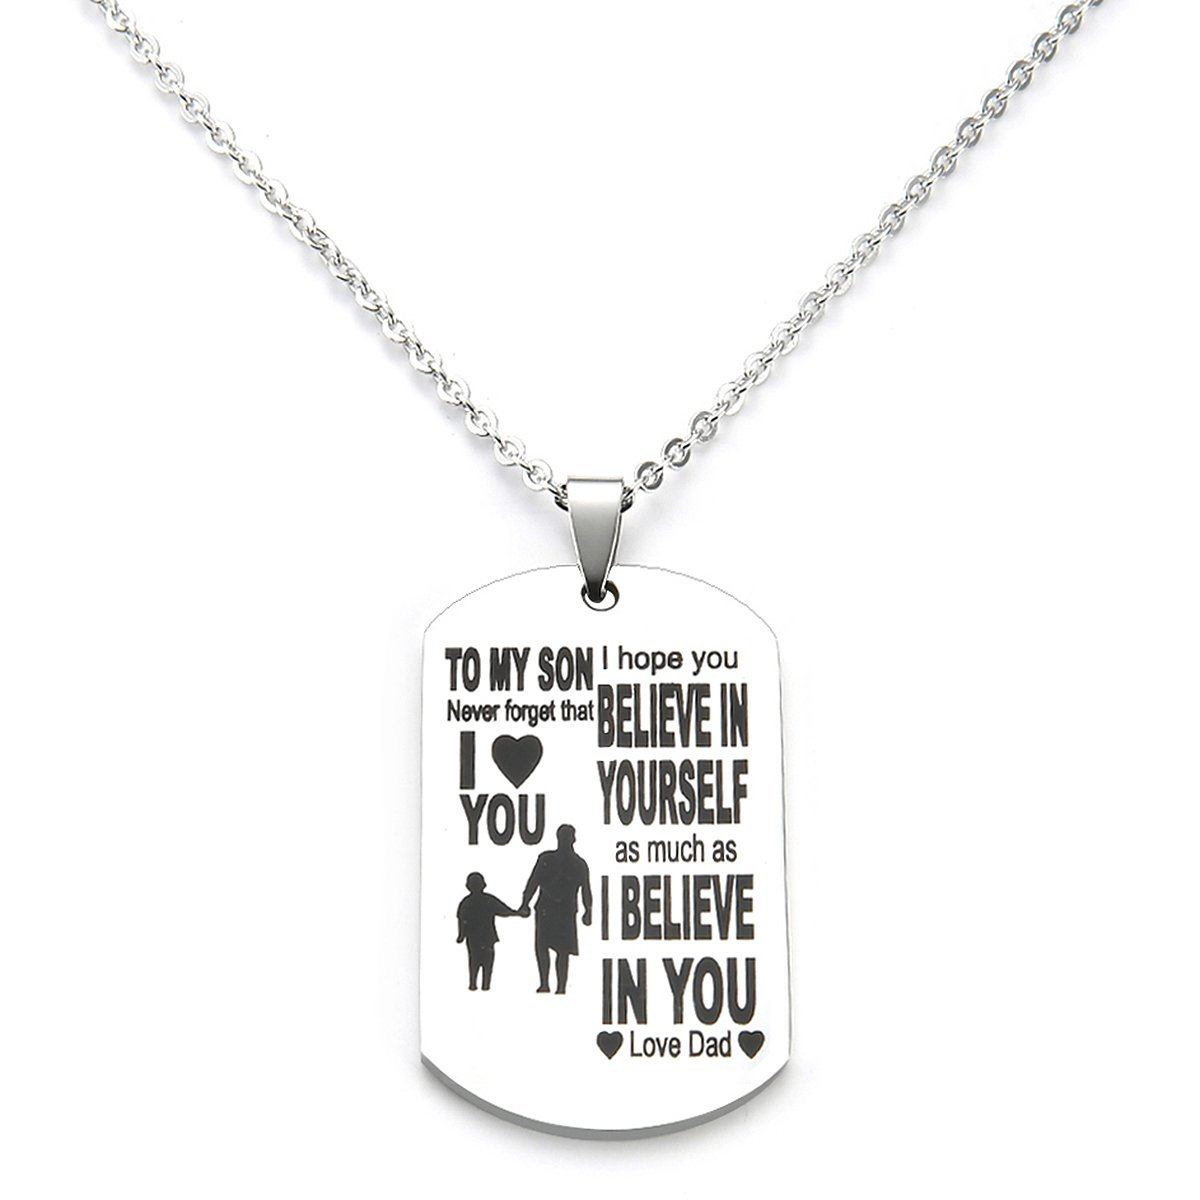 Best gift My Son Dog Tag From Dad Mens Boys Necklaces for Kids Child Teen Love Gift Military Air Force Pendant danjie Nkc033